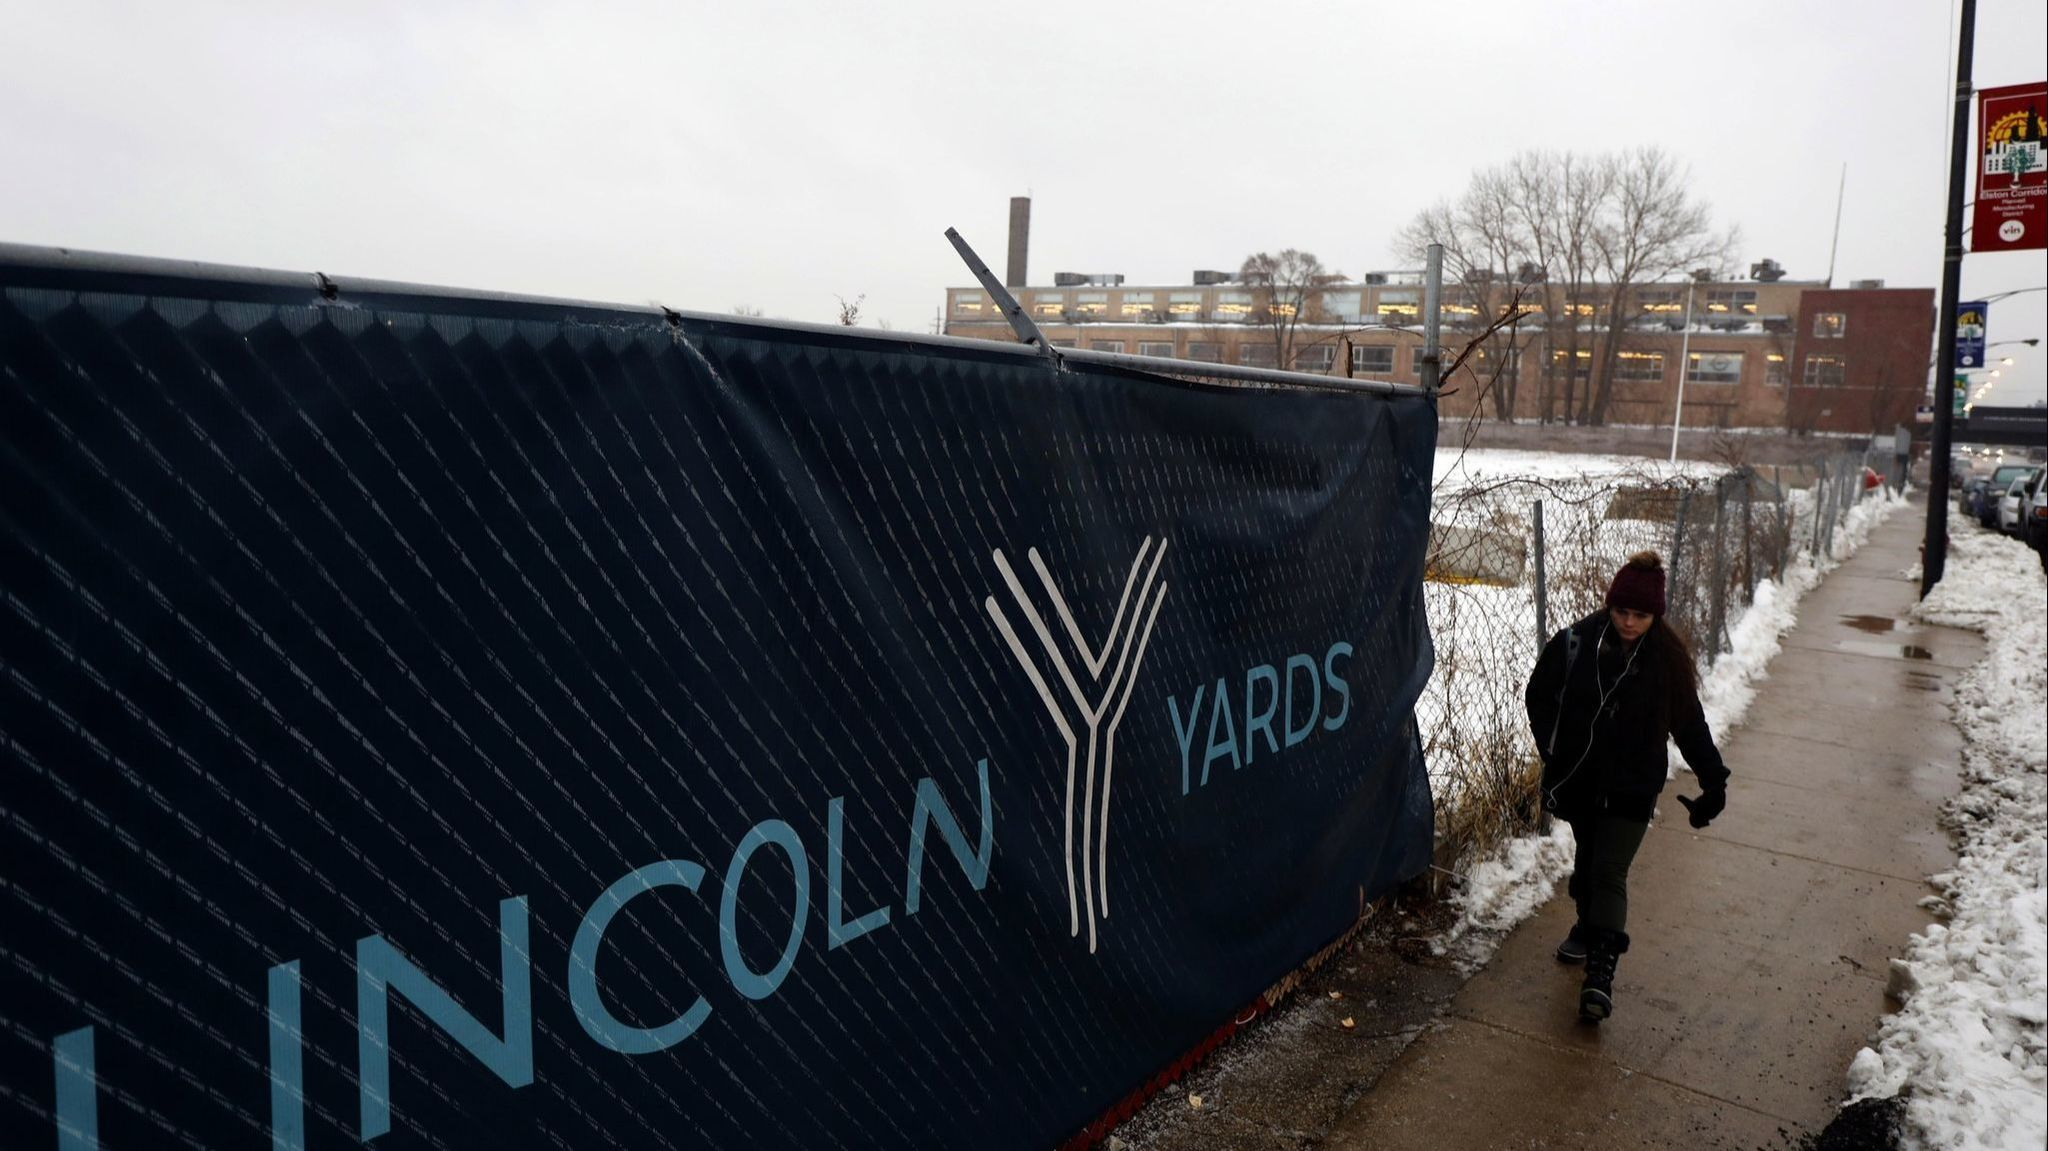 Lincoln Yards development gets City Council zoning approval, tax subsidy still to come